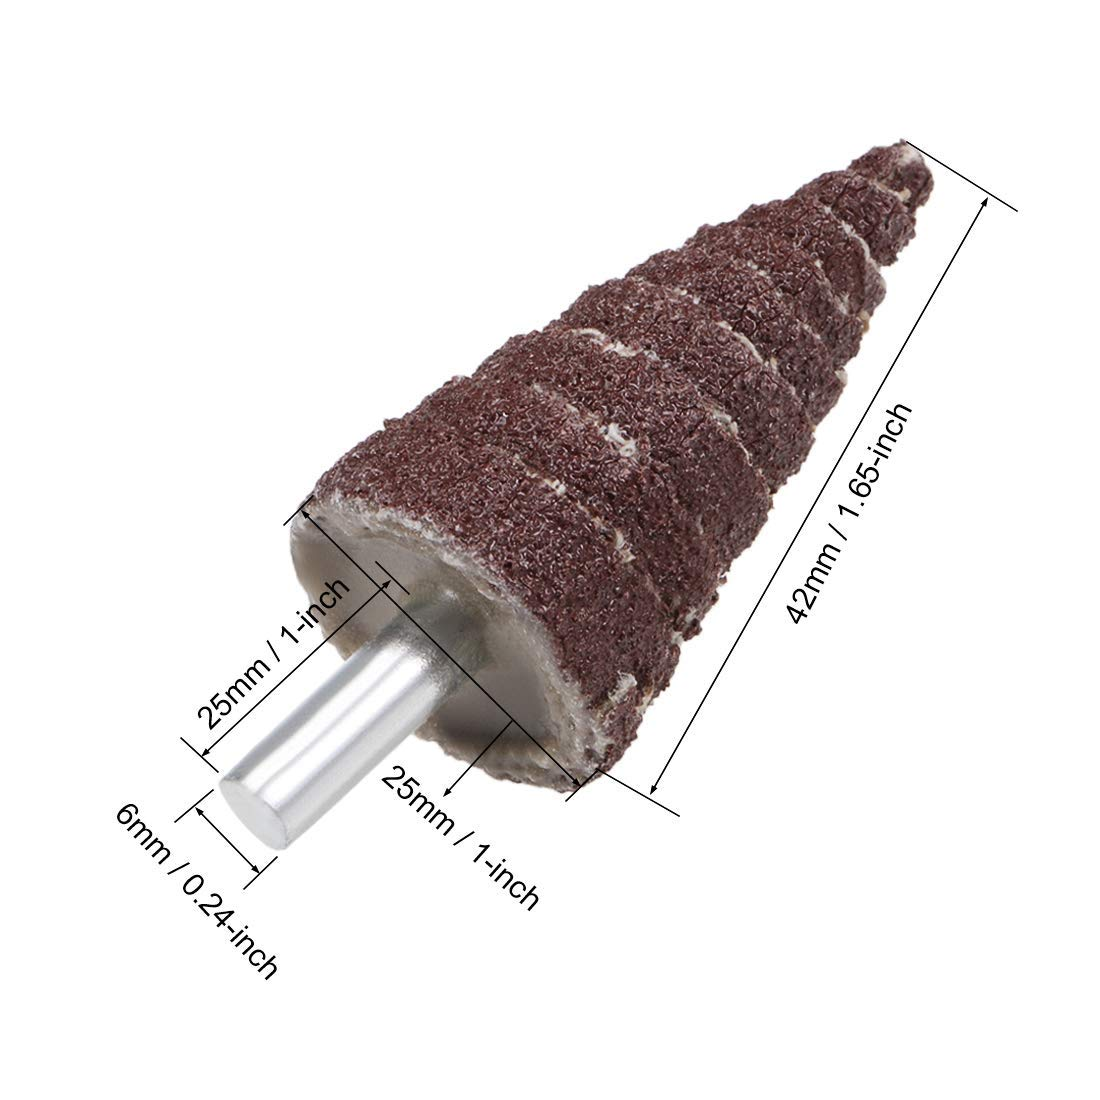 Sanding 5 Pieces 25mm Cone-Shaped Abrasive fin Wheel polishing 1//8 inch Shank for deburring 80 grit